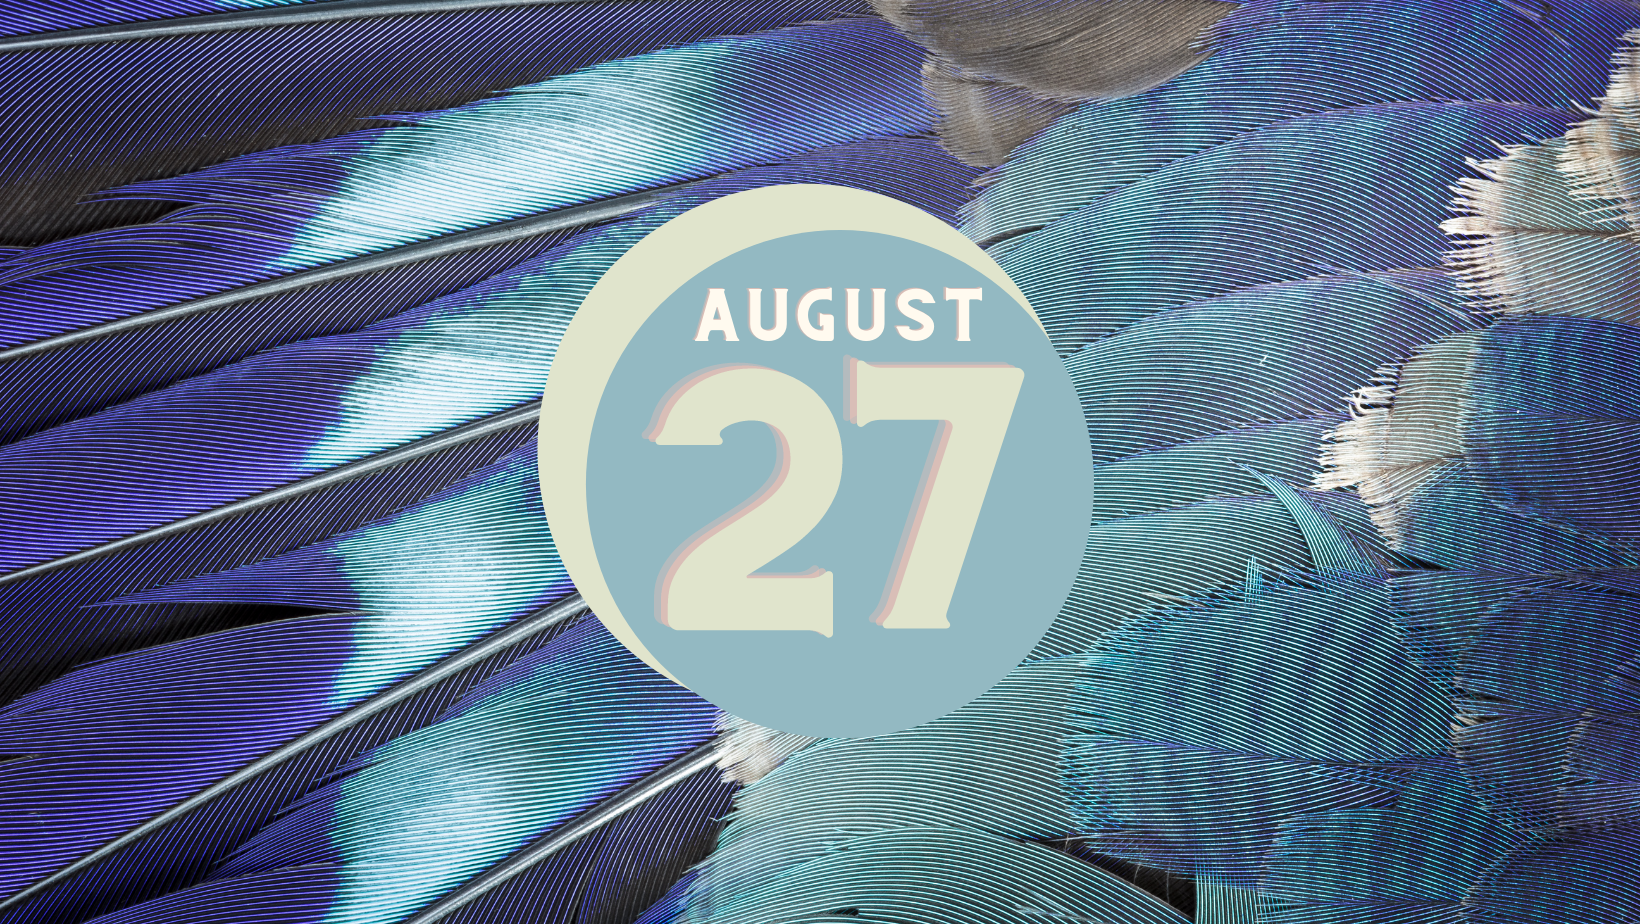 blue and grey feathers, text reads august 27